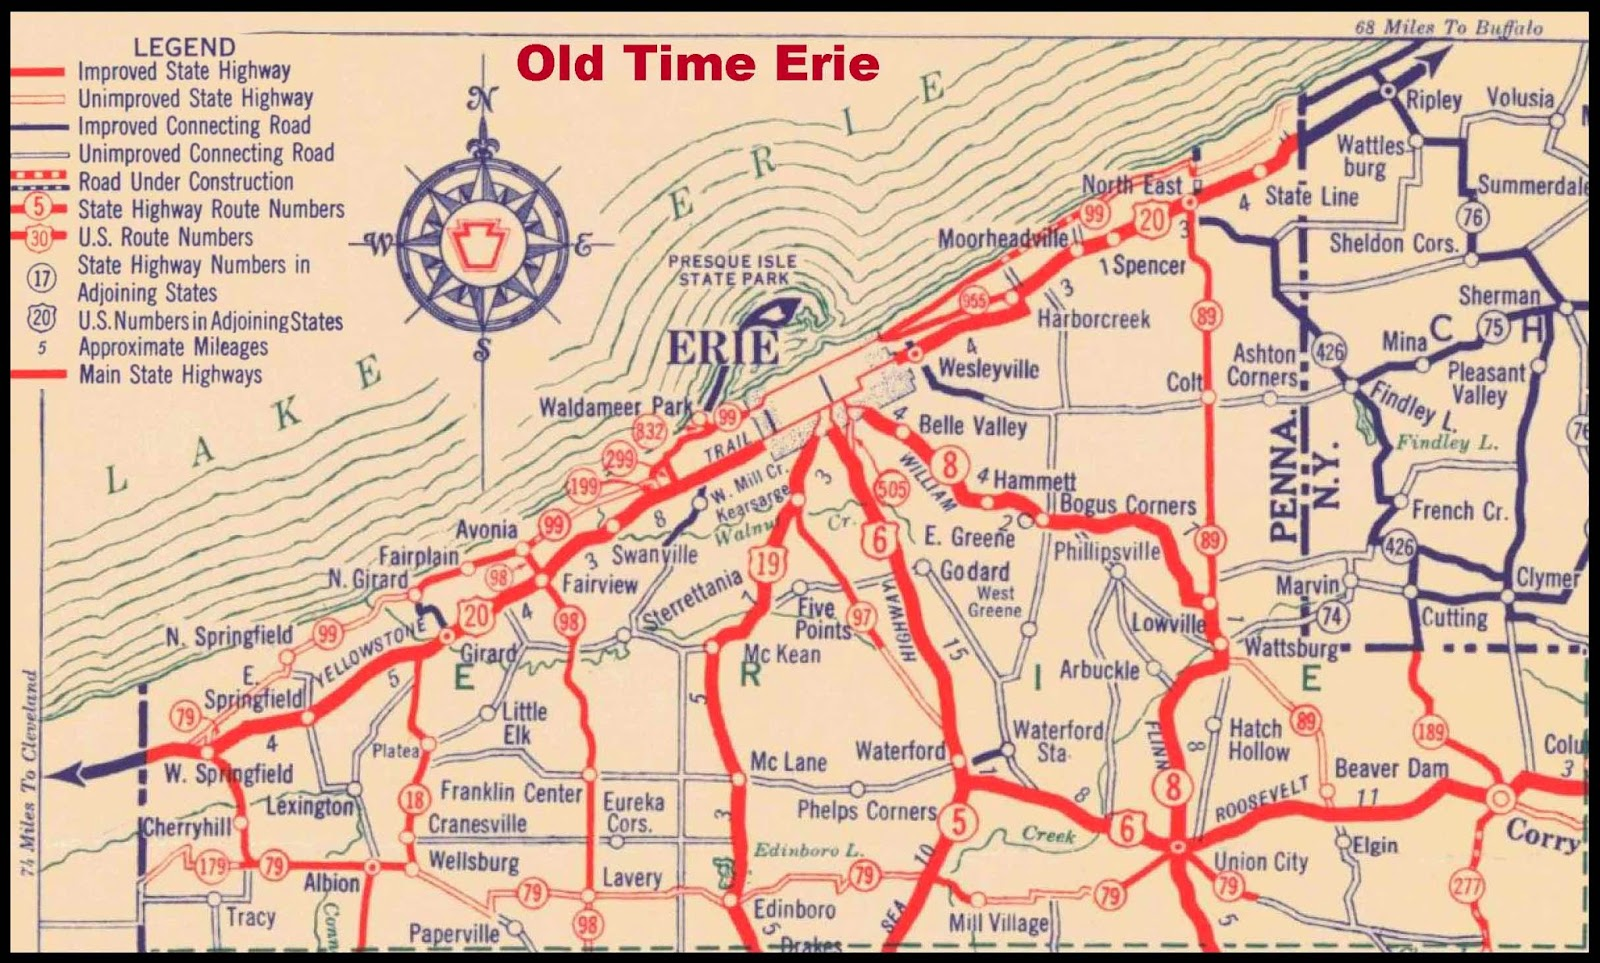 Old Time Erie 1930 Erie County Highway Map